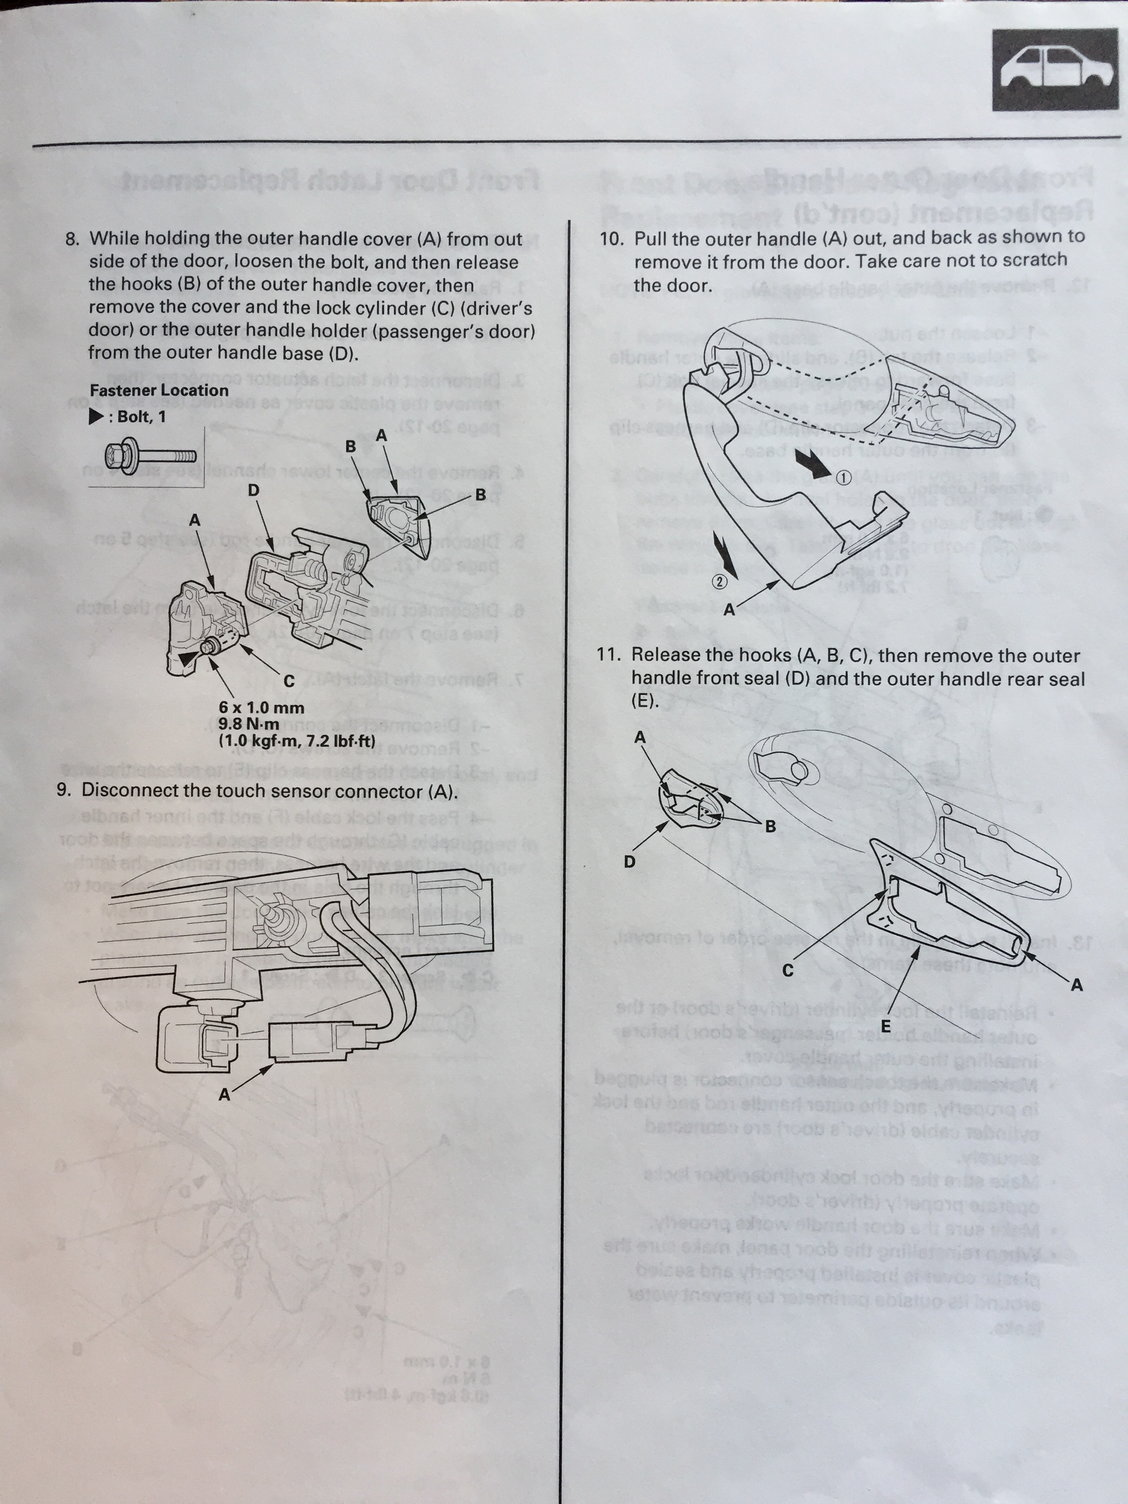 Keyless Entry Power Doors Locks Security Nav No Longer Work Acura Tl 2004 To 2014 Fuse Box Diagram Acurazine Need The Door Light Sensor Communicating With Fob How Do I Leave It Disconnected So As Avoid This Silliness Again